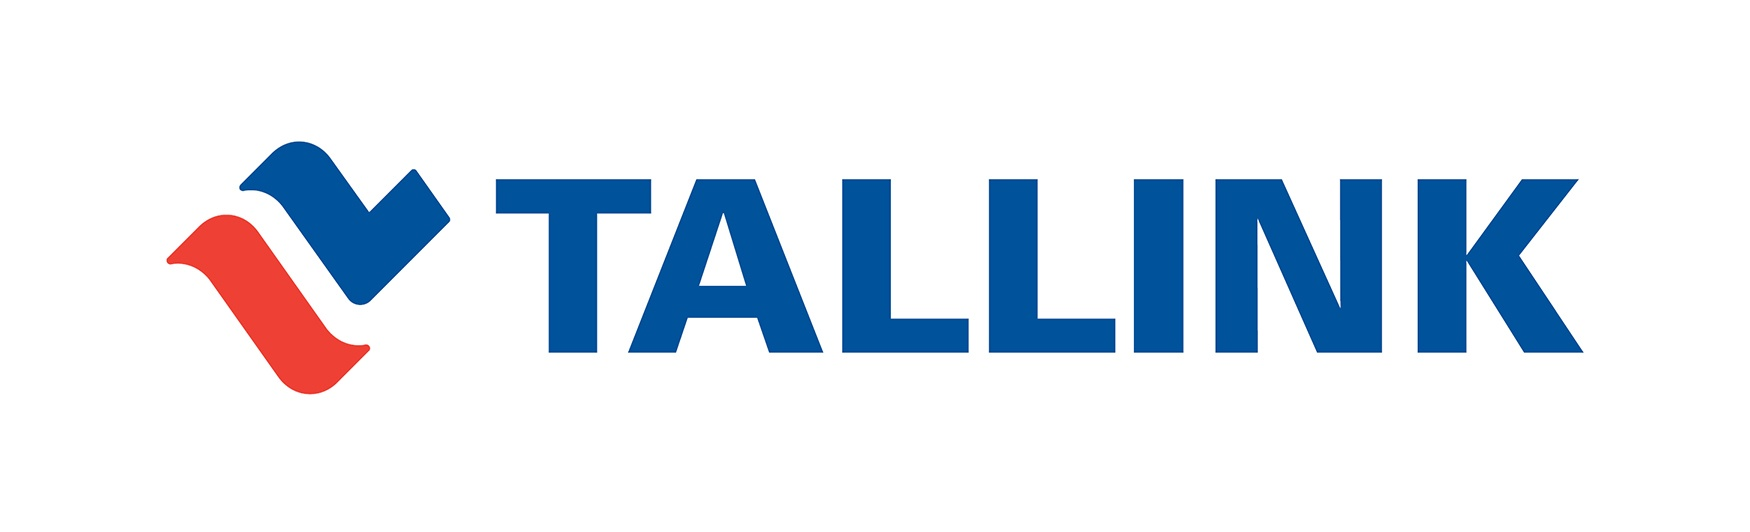 Tallink logo for giosg customer story